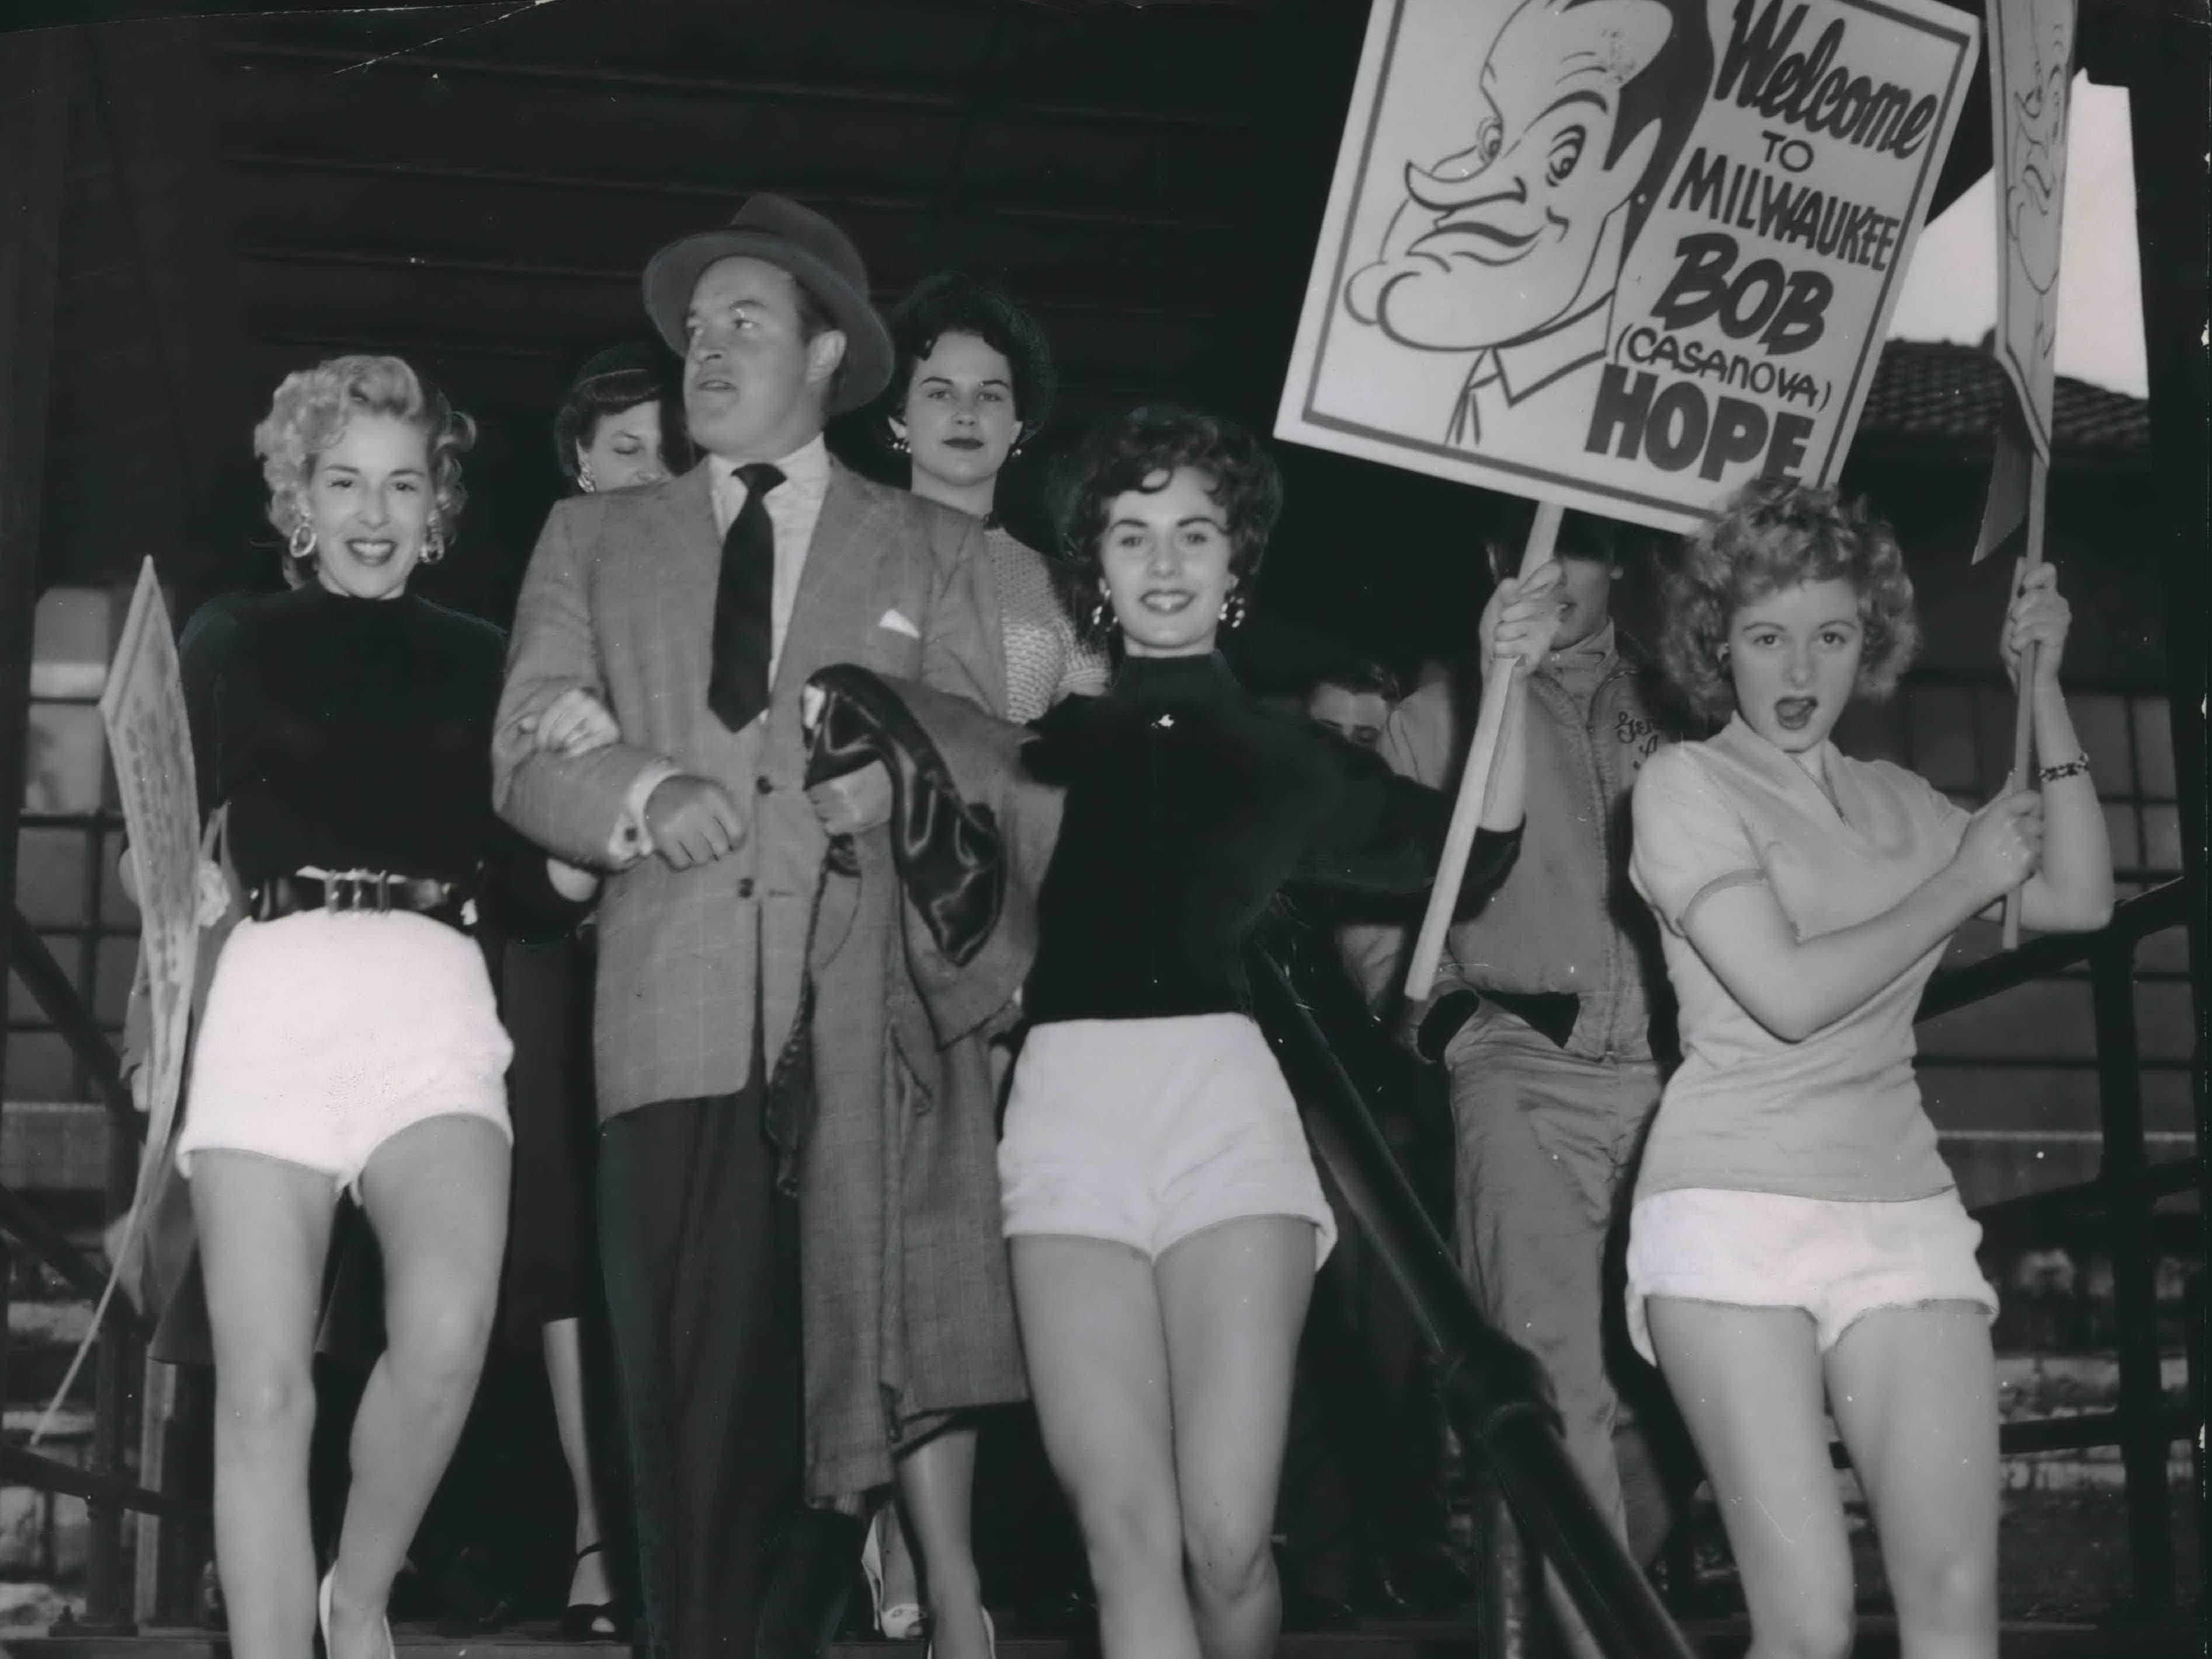 Bob Hope gets a big welcome when he arrives in Milwaukee by train at the Chicago and North Western road station on April 27, 1954. The comedian came to town for the annual cancer fund show at the Wisconsin Theater, where he shared the stage with stars Pat O'Brien, Cy Howard, Marie McDonald, and Elaine Carvel. This photo was published in the April 27, 1954, Milwaukee Journal Extra section.